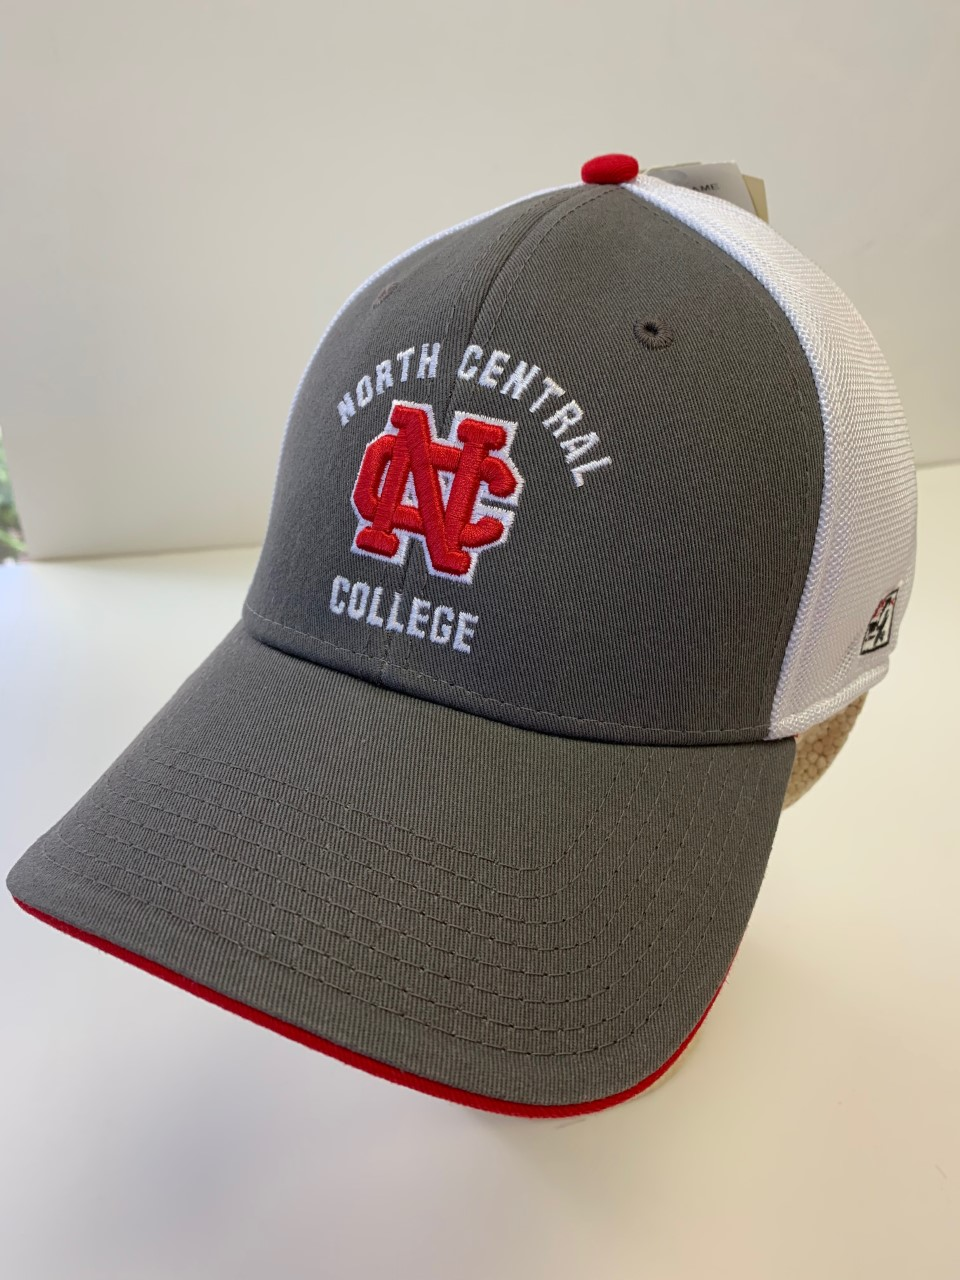 Image for the The Game Flex Fit Hat w/Logo & School Name, Grey/White product